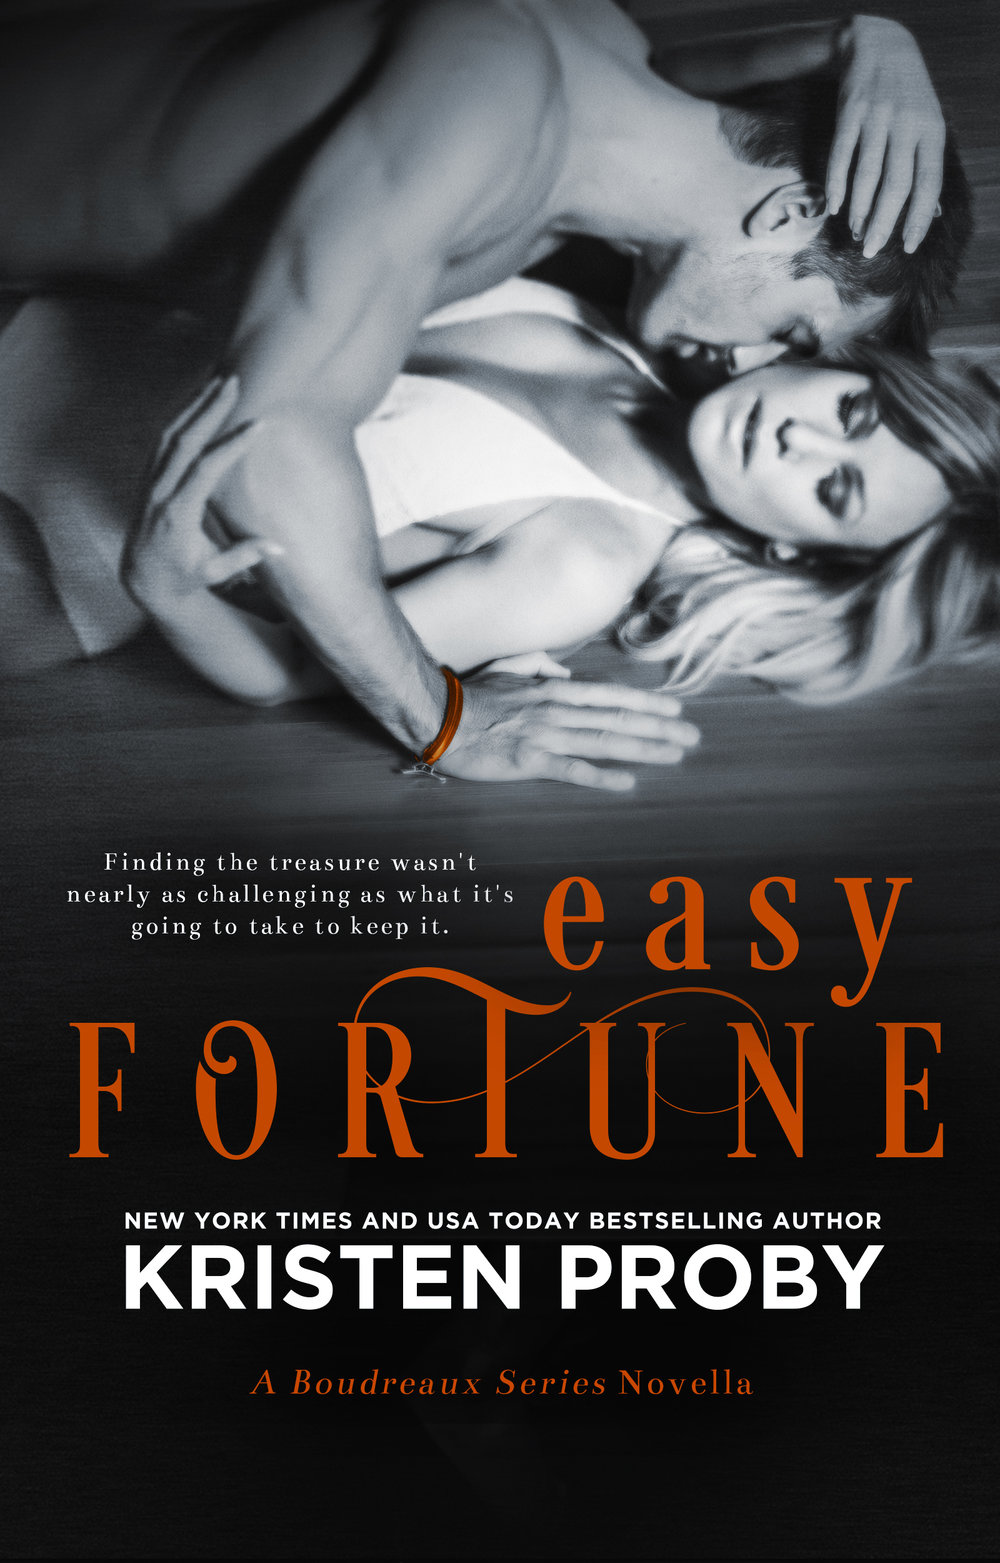 About EASY FORTUNE (A Boudreaux Series Novella): The Boudreaux Series—Sexy. Intriguing. Easy. Sometimes the past is better left behind you… Lena Turner has spent her life as the outsider. Thanks to her extraordinary gifts, she's learned to be independent—especially when it comes to men. She's content to live her life in New Orleans as a schoolteacher, dating casually and dedicated to her small family. Long term is not part of her plan. Sometimes the past catches up with you…  Leaving Lena behind to pursue his career was the most difficult thing Mason Coulter ever did. He told himself that it was for the best, had even convinced himself that he had only Lena's best interests in mind. But now, after six long years, he's back in New Orleans to settle his late eccentric aunt's estate. All he has to do is get in and out of the city without submitting to the need to see Lena. But to Mason's dismay, his aunt made other plans.  And sometimes the future and the past collide…  Having Mason walk back into her life is something Lena never saw coming. She could refuse to help him, but she's never been good at telling Mason no. So she'll do what she can to get the estate settled and Mason out of her life for good. At least, that's the plan. But Mason has plans of his own… Amazon Barnes & Noble Kobo Add to your Goodreads